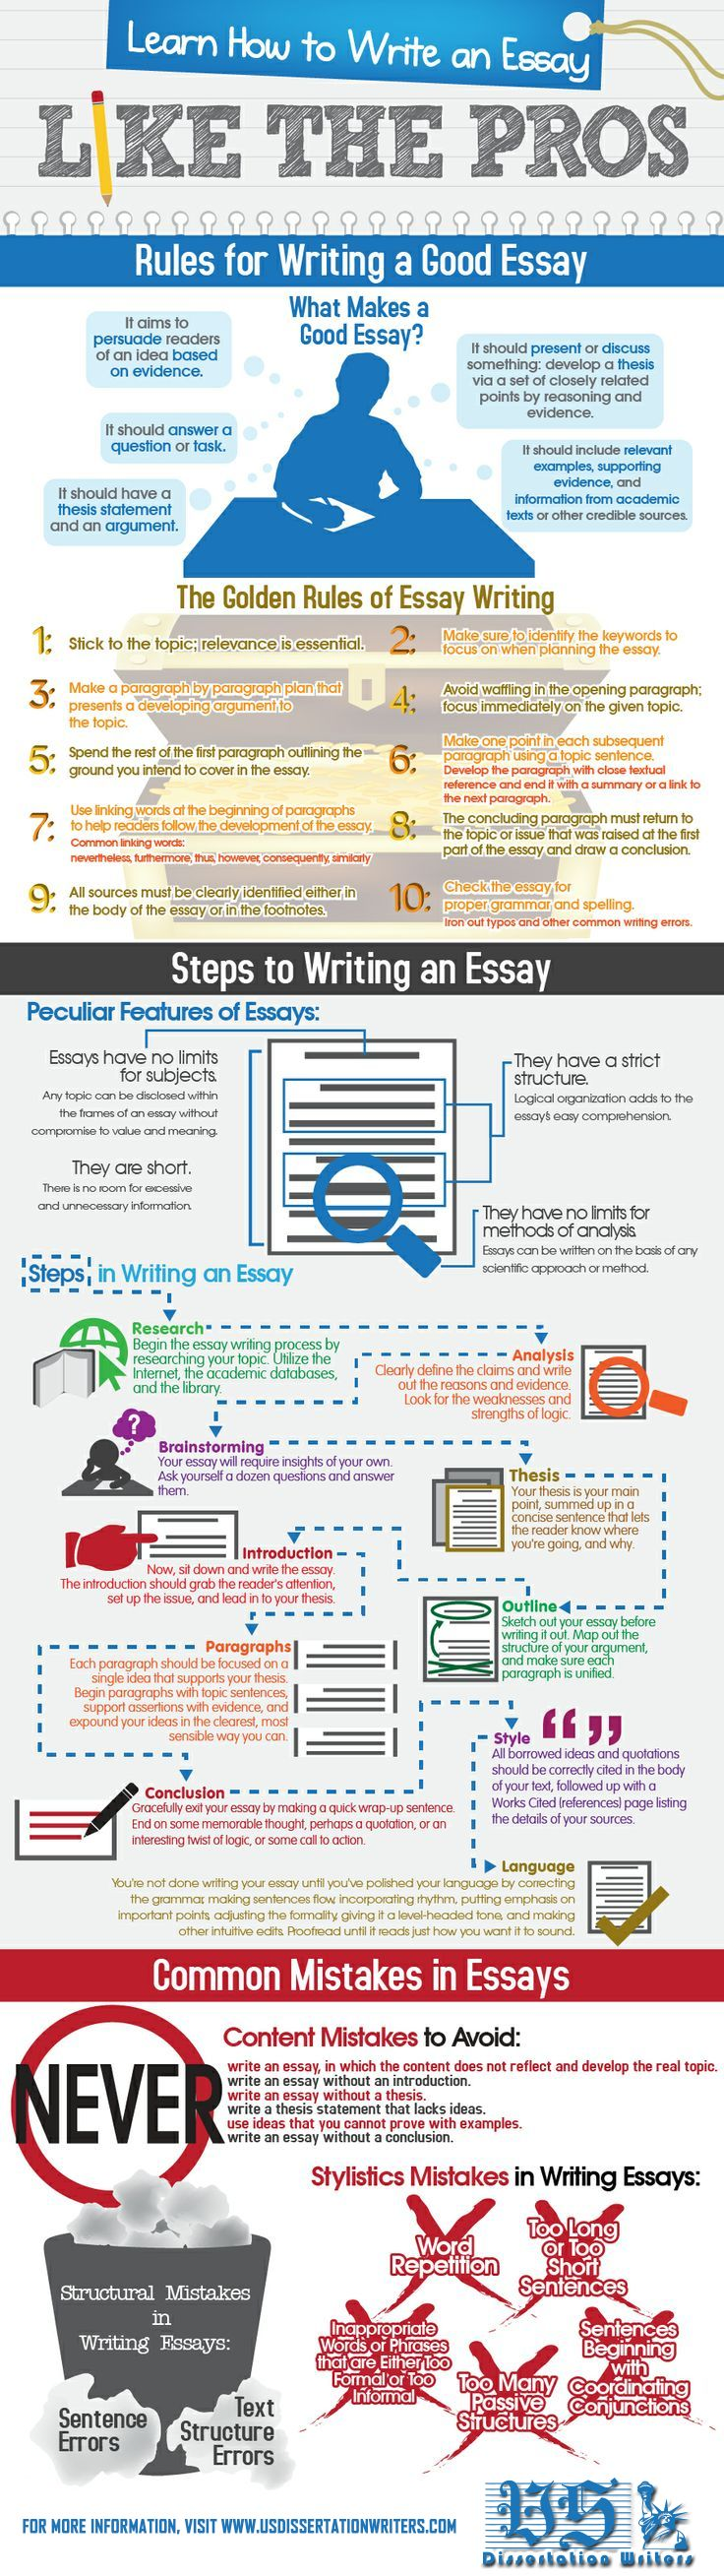 essay-writing-tips